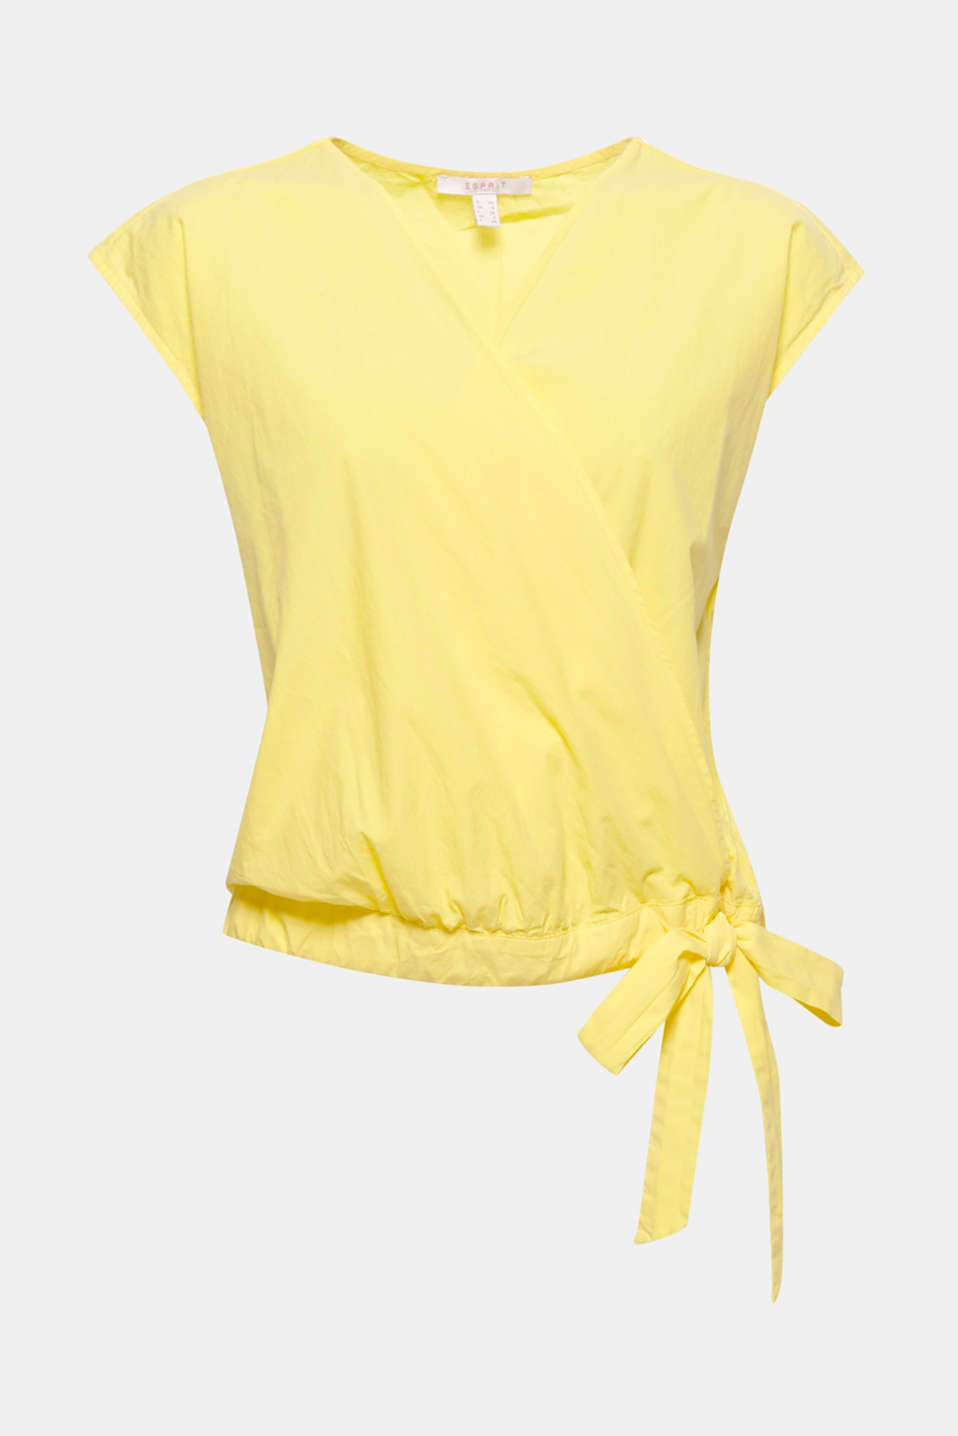 The trend colour yellow takes centre stage: lightweight poplin blouse with a wrap-over effect and drawstring panel with a bow at the side!